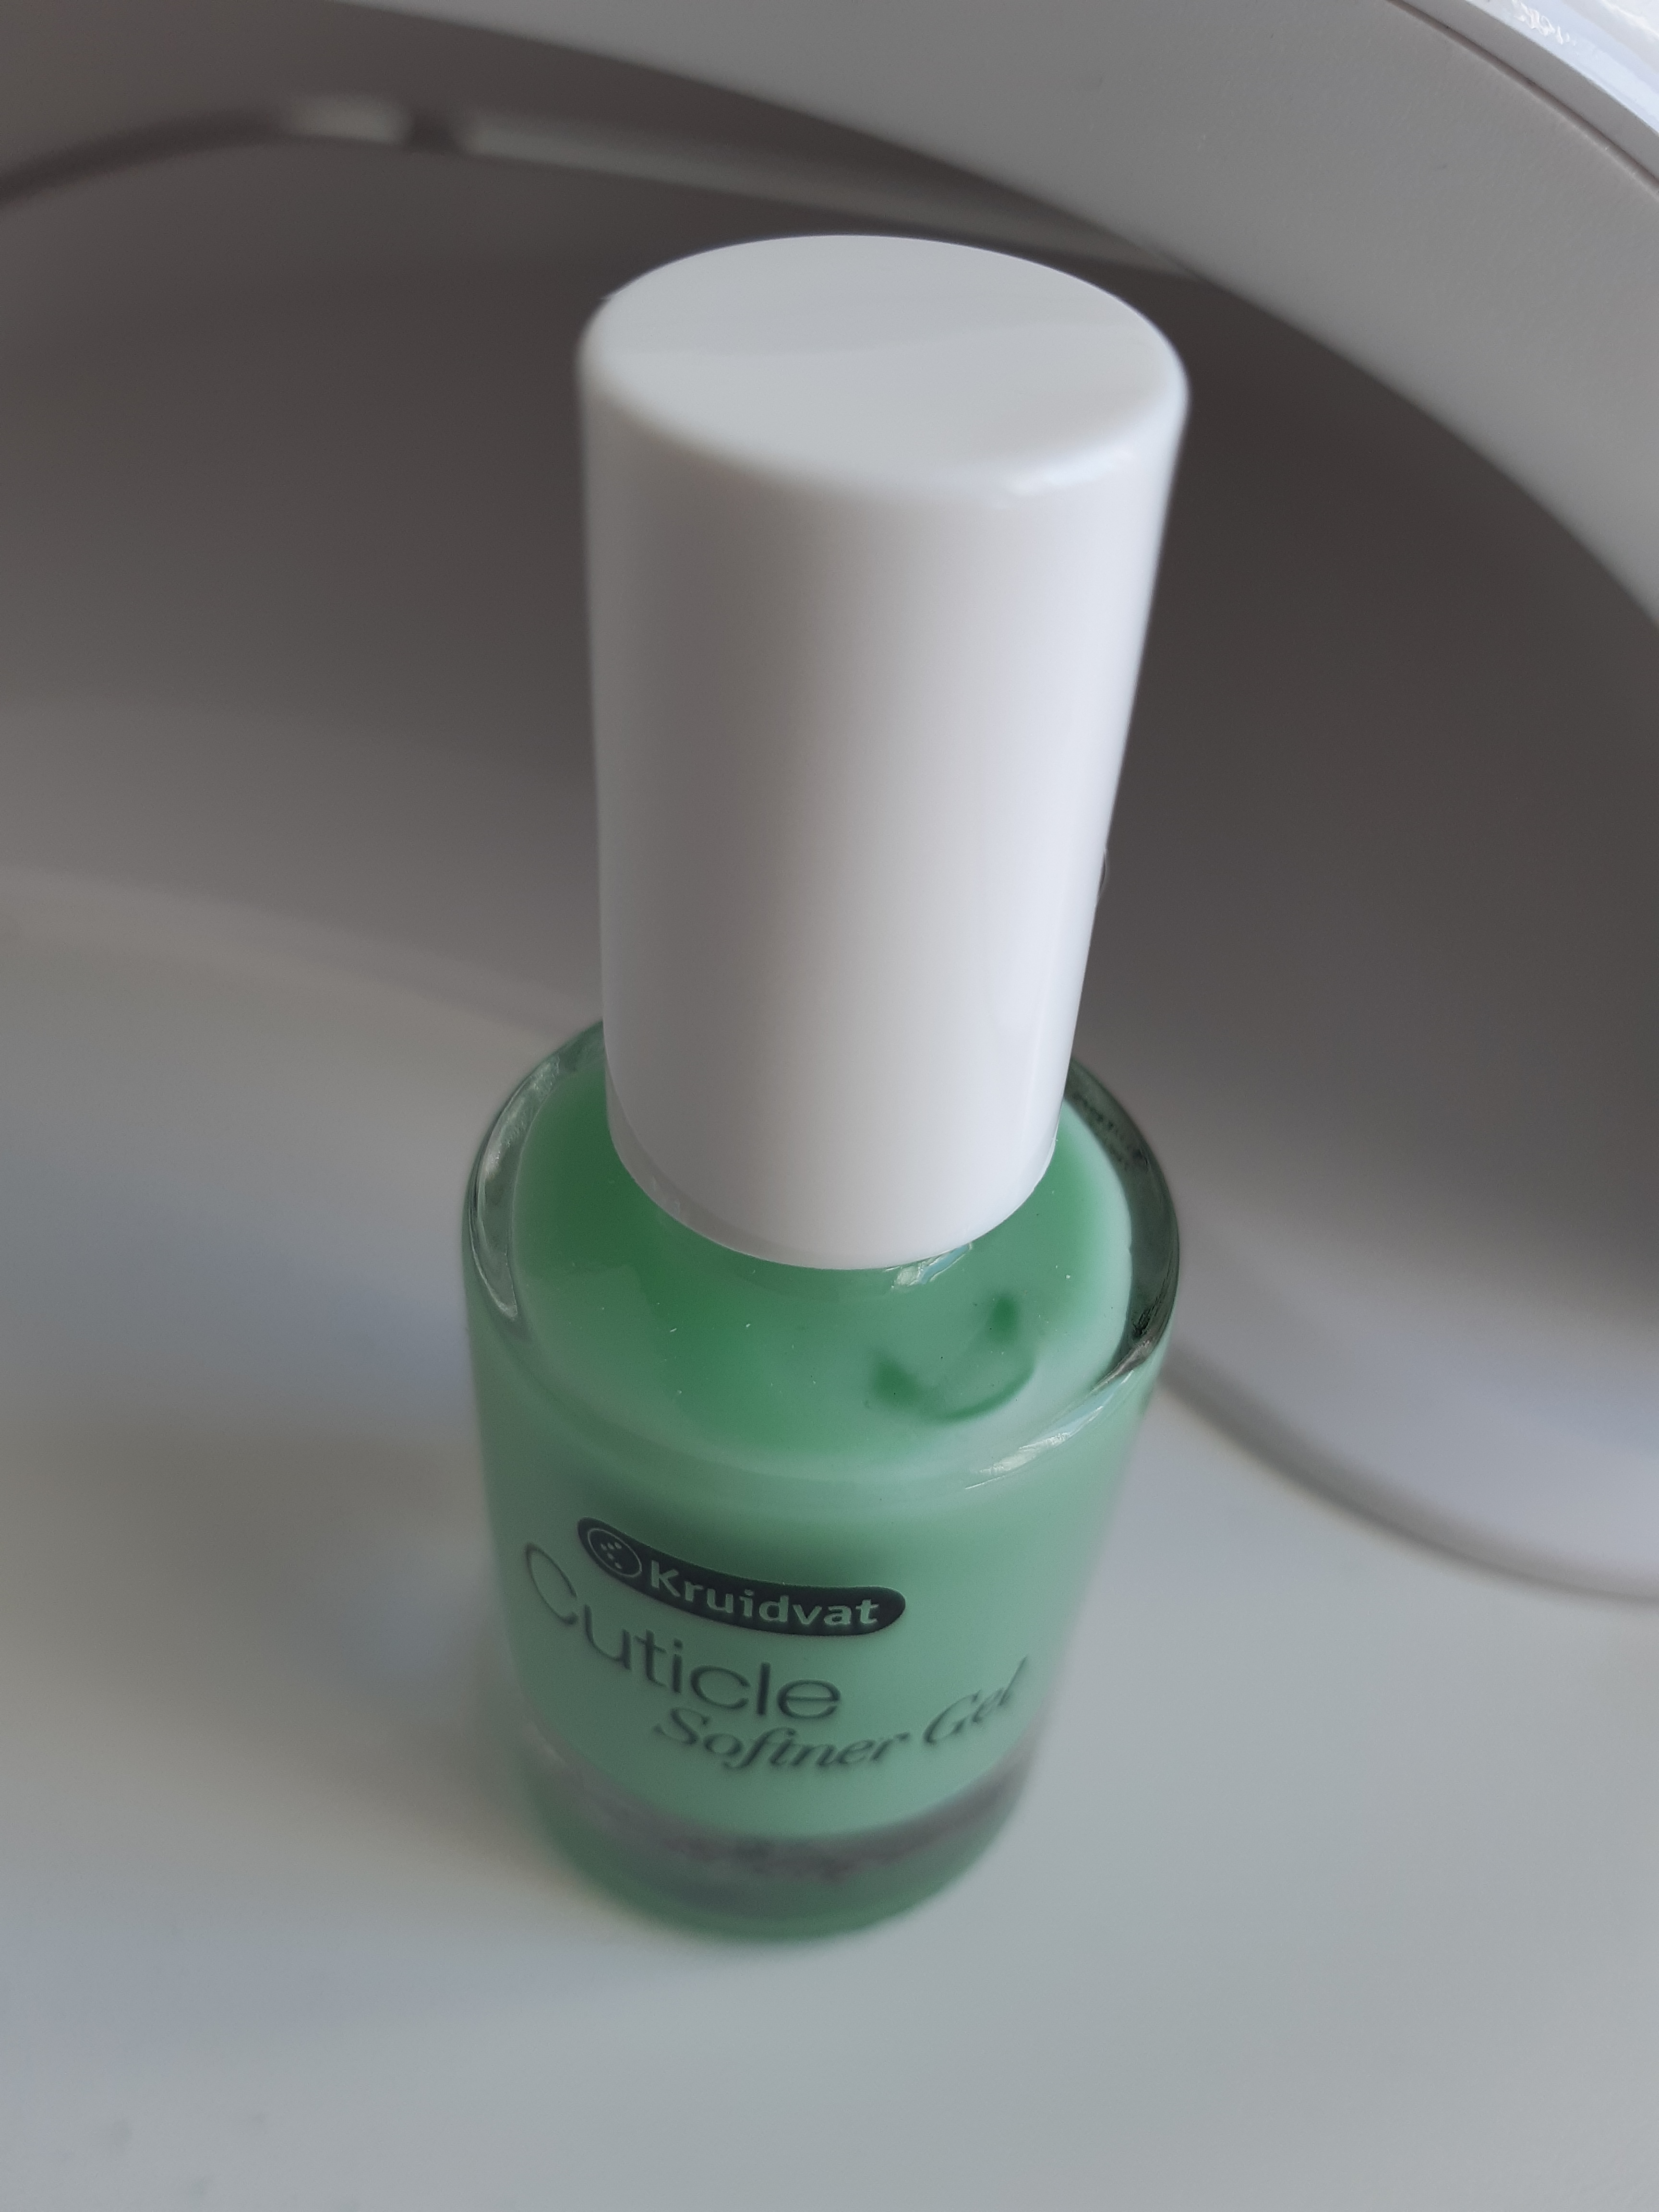 Kruidvat Cuticle Softener Gel